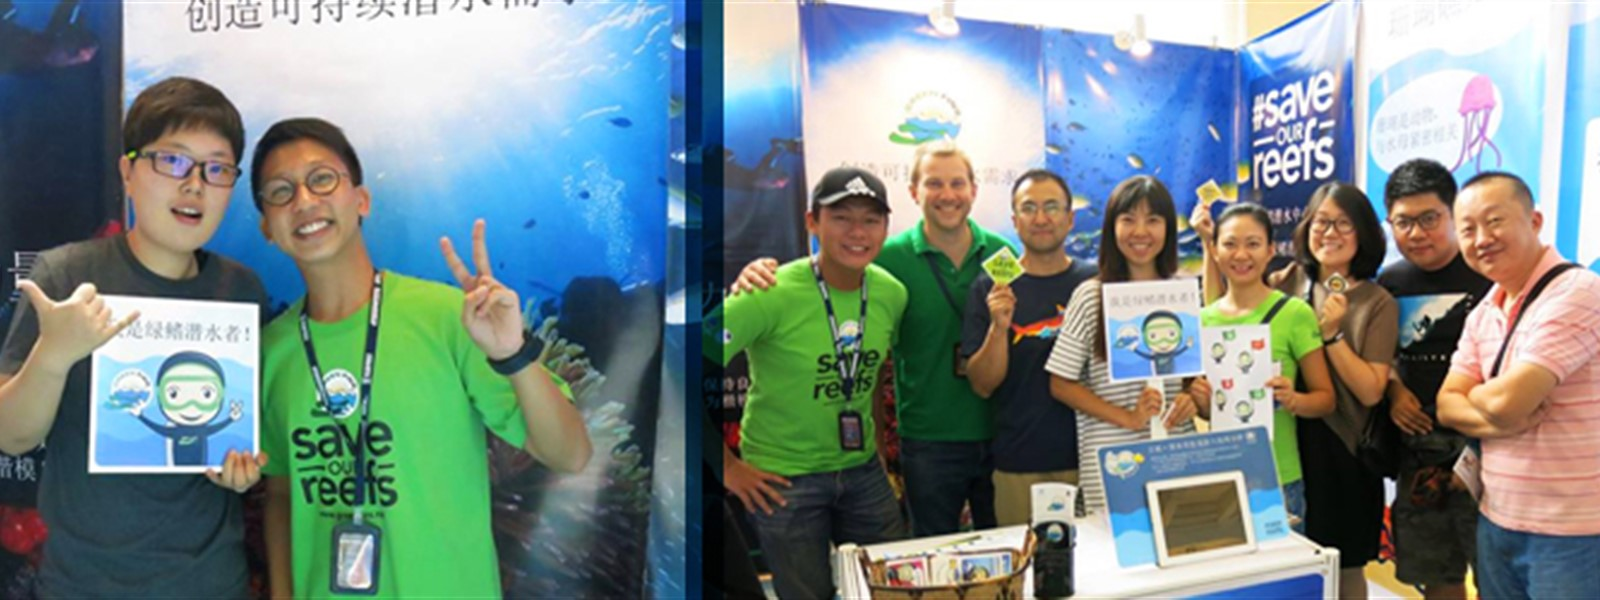 Picture of the Reef-World team with visitors to the Green Fins booth at Adex in Beijing, China.